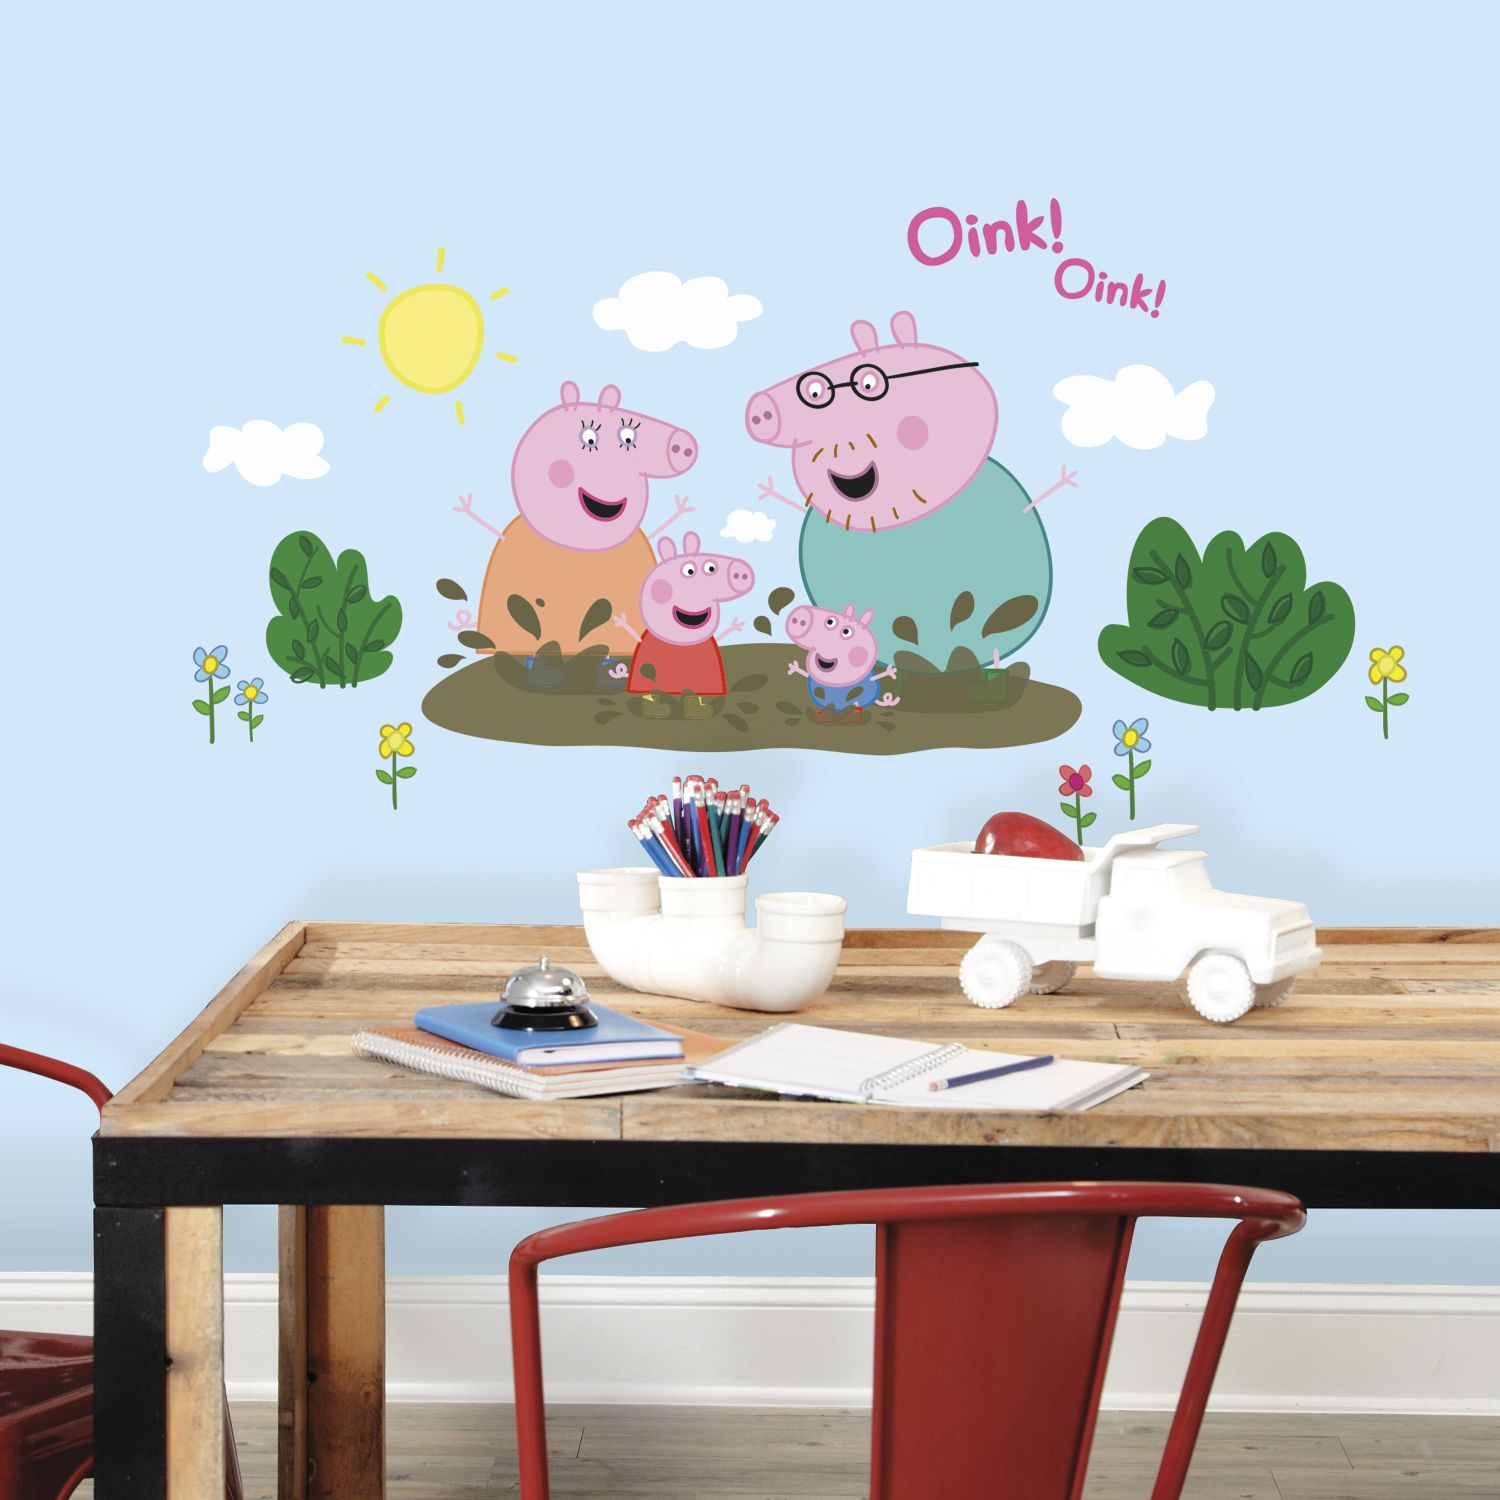 Peppa Pig and Family Muddy Puddles Wall Decals. Peppa Pig Family Muddy Puddles Wall Decals